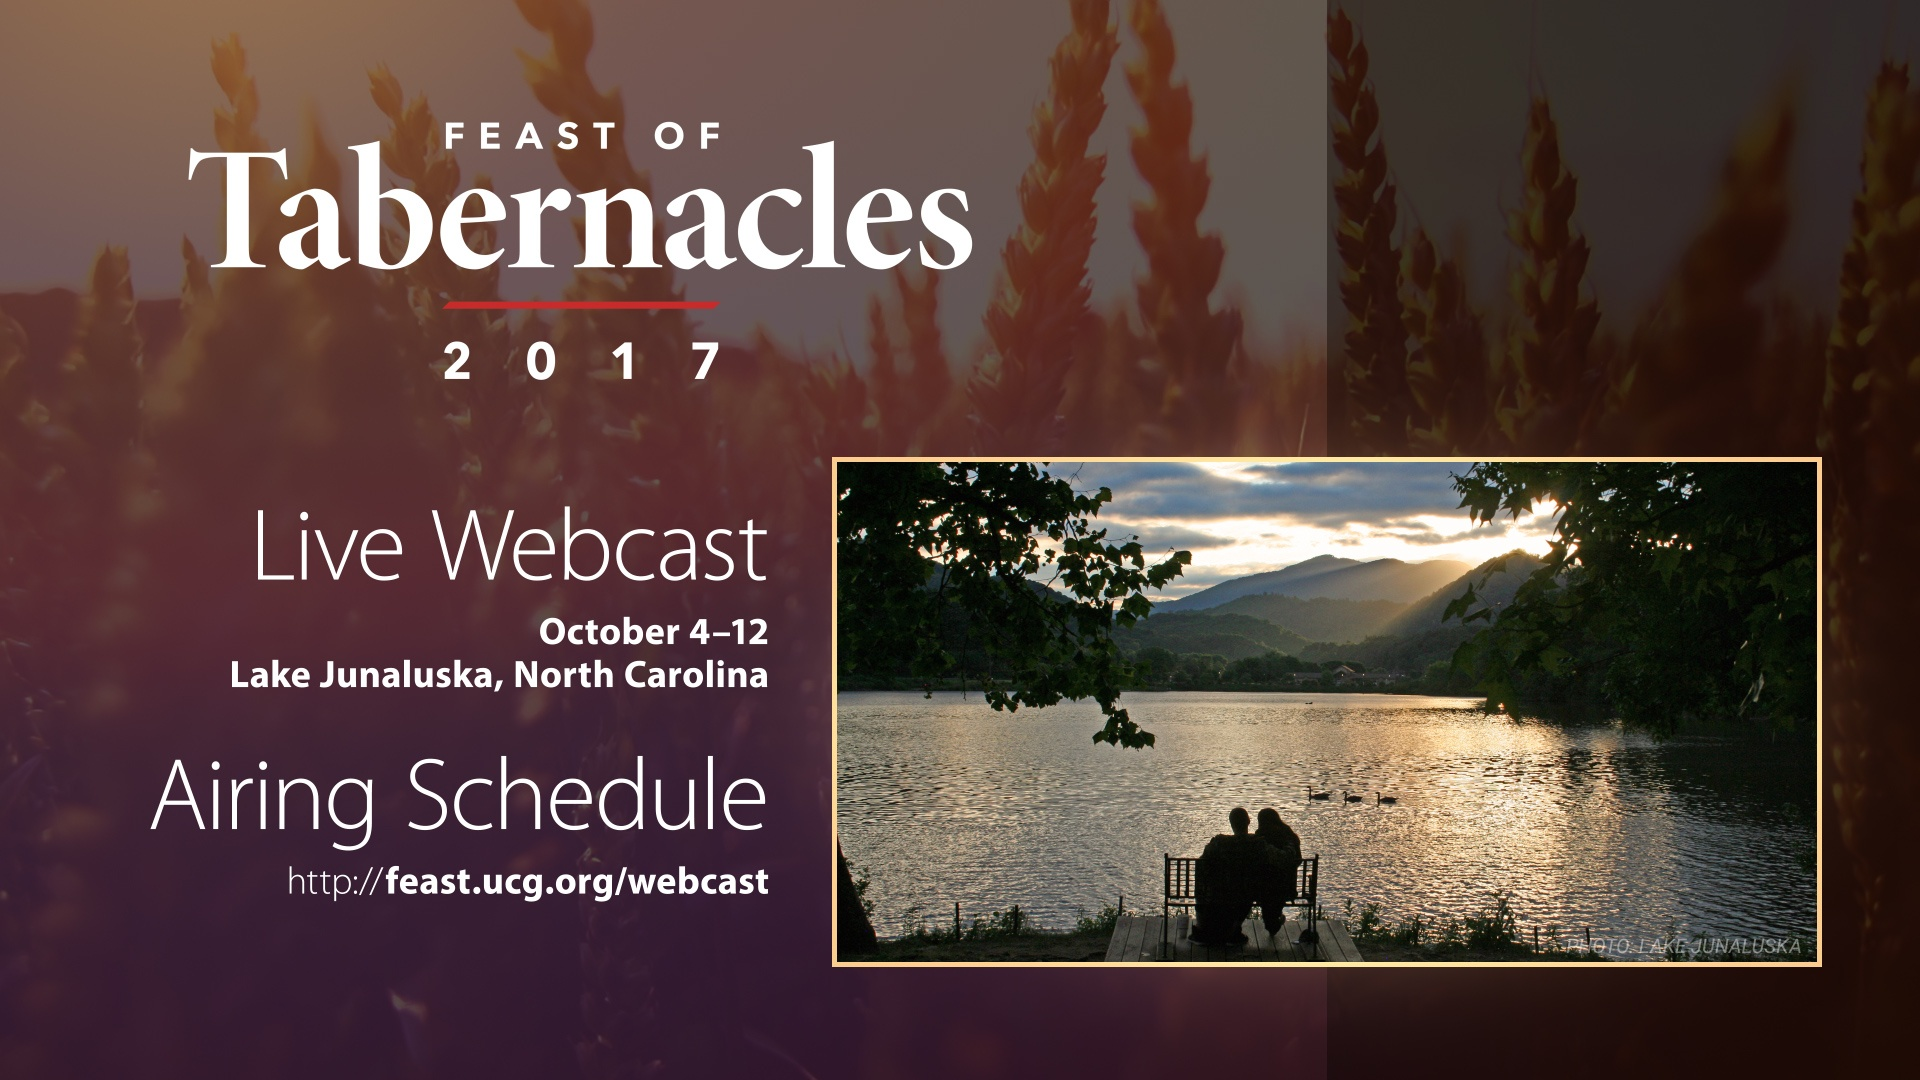 Feast of Tabernacles - Lake Junaluska